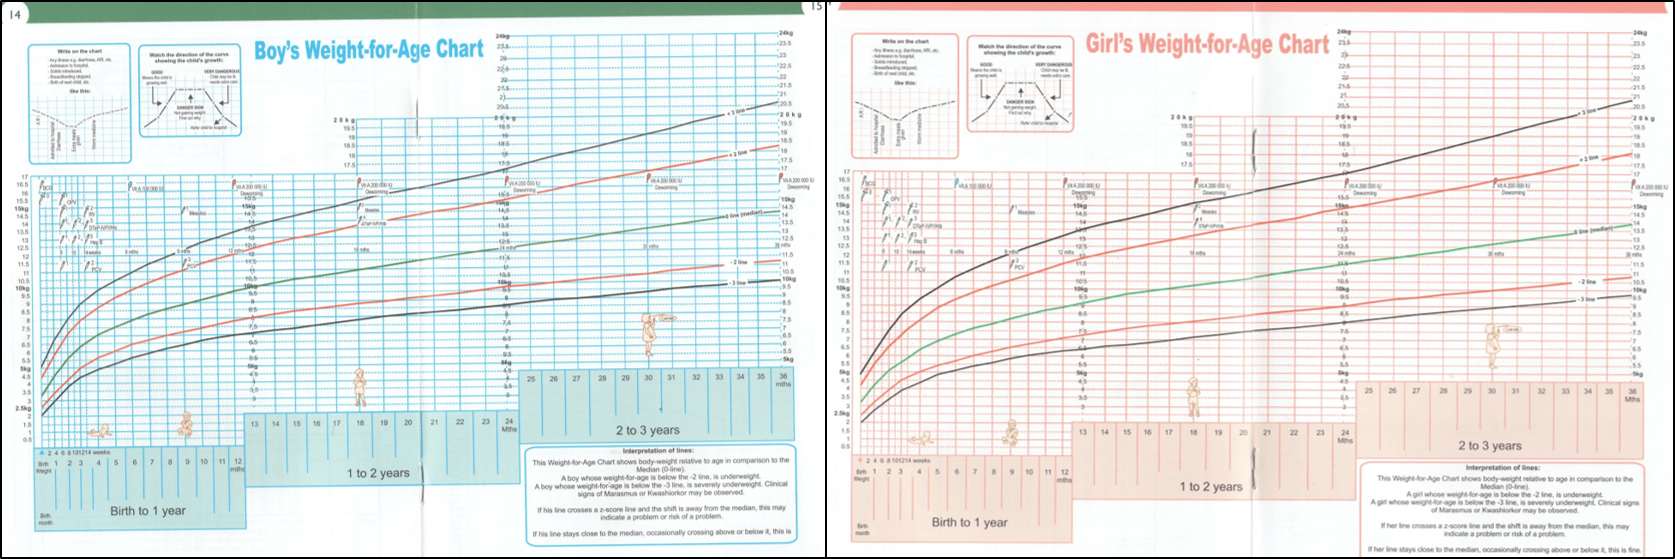 the growth charts in the sa road to health booklet u2013 same chart different colours